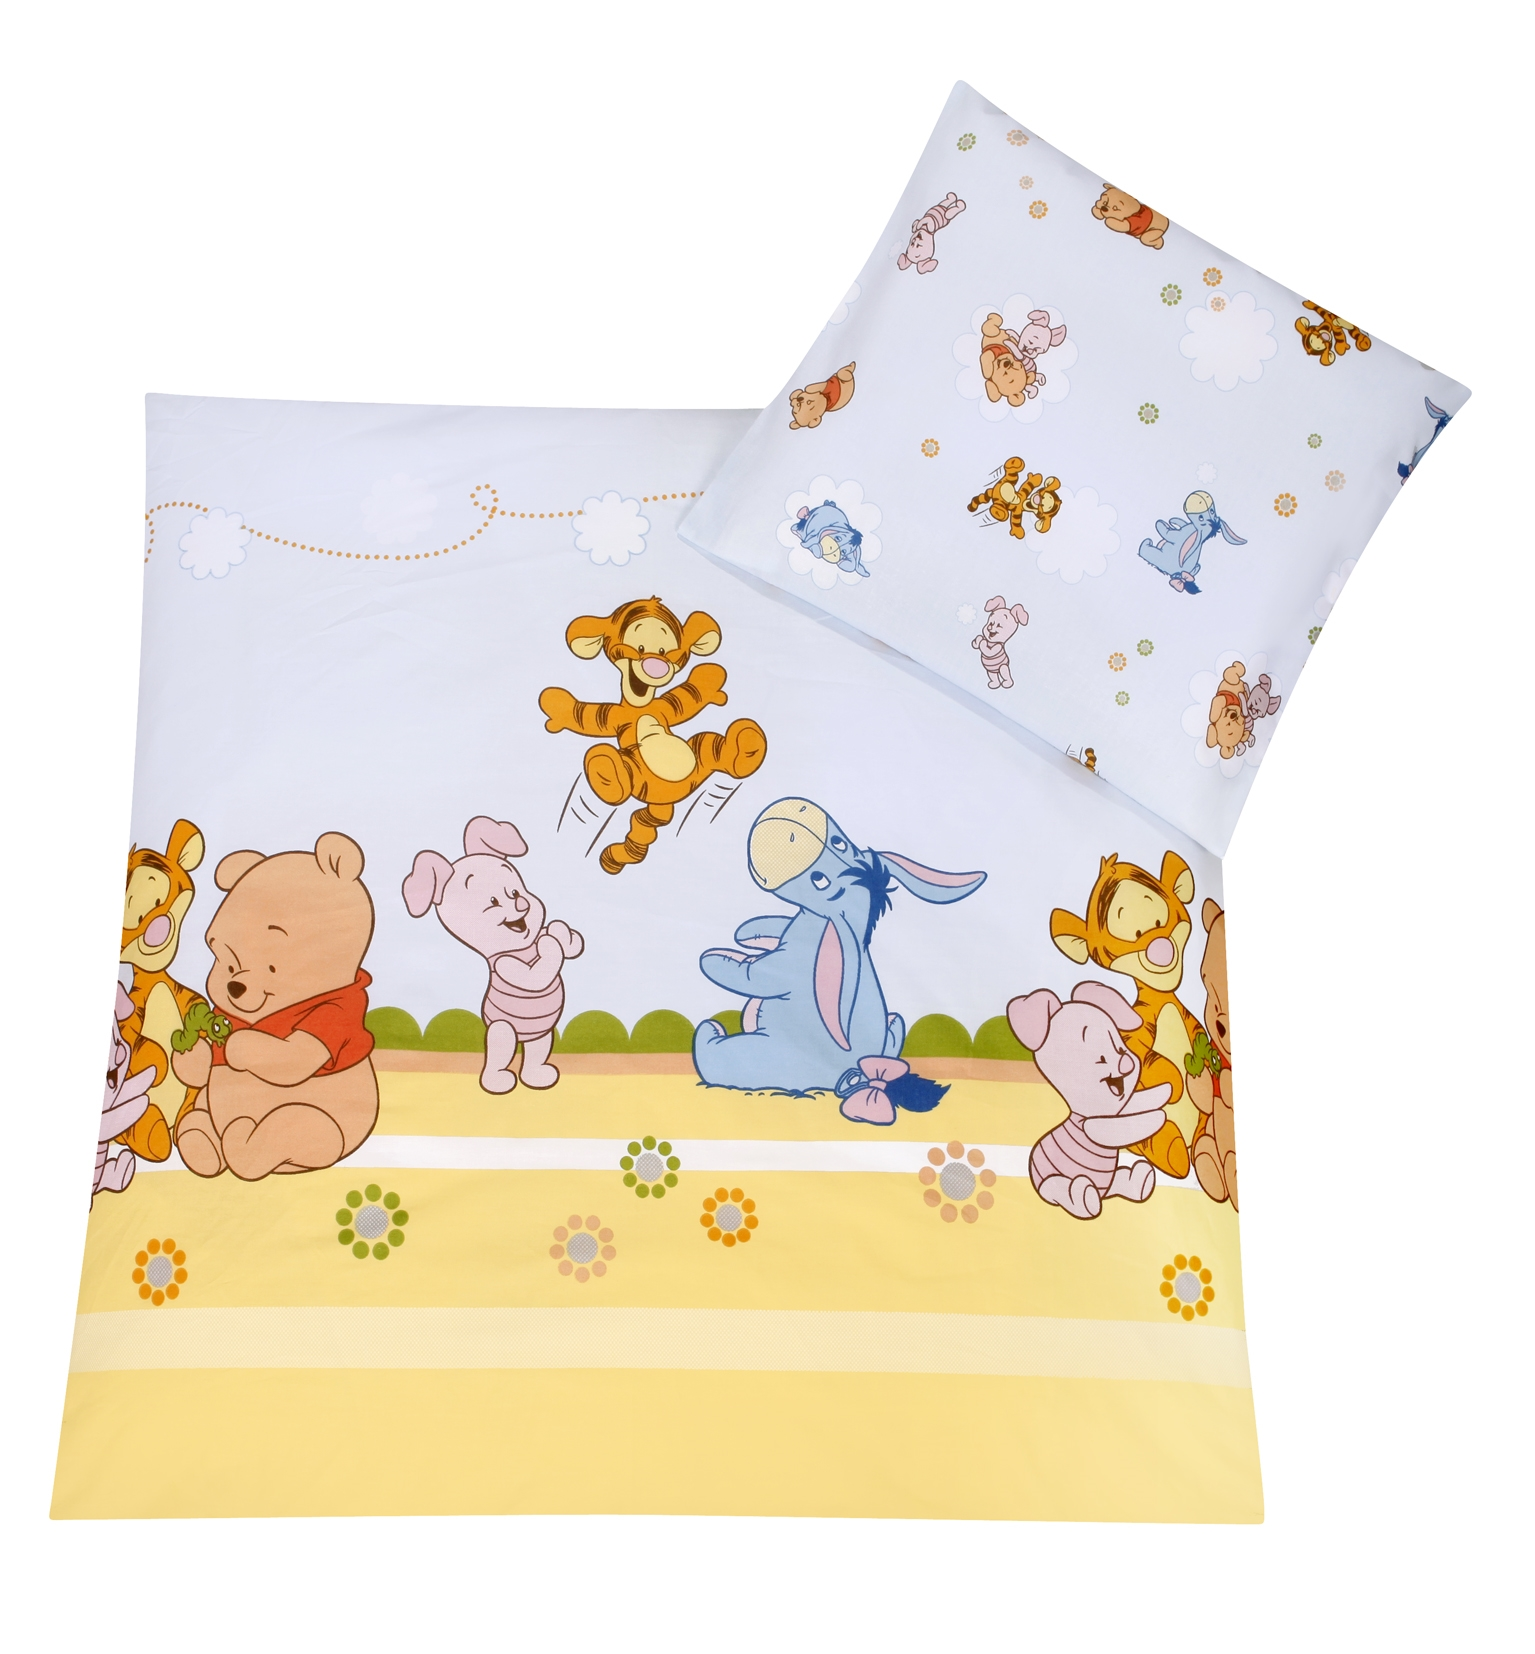 Zöllner Disney Bettwäsche Baby Pooh And Friends 80x80 35x40 Cm Kidsroom De